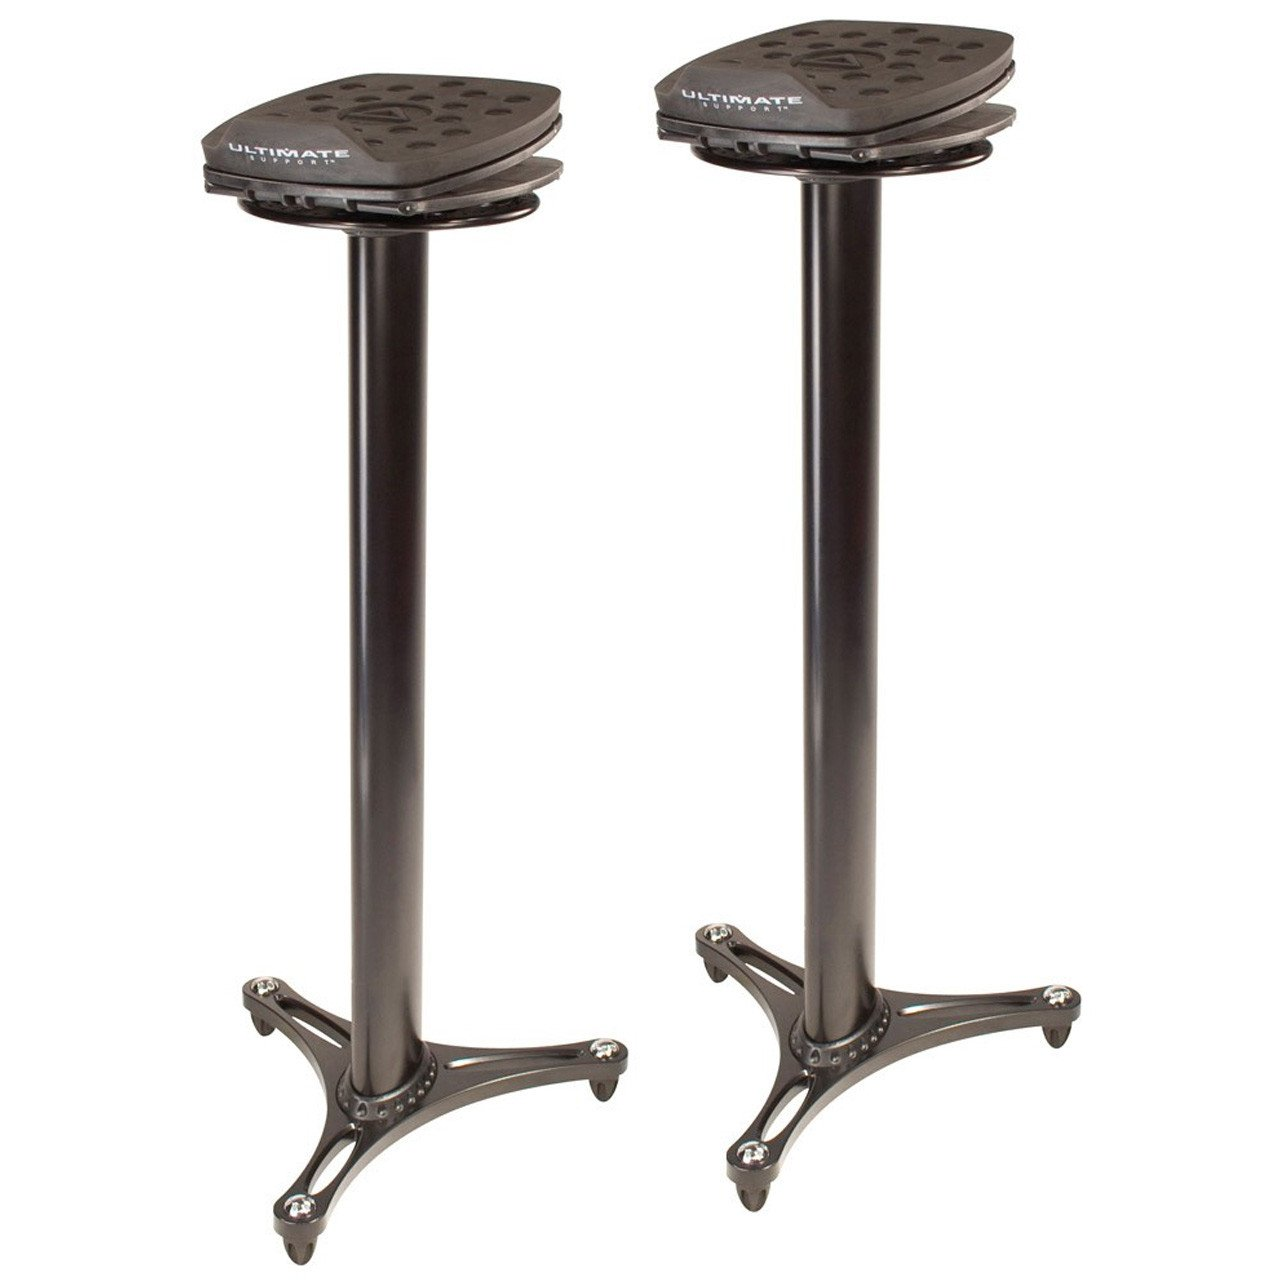 Studio Monitor Stands - Ultimate Support MS-100B Professional Column Studio Monitor Stands